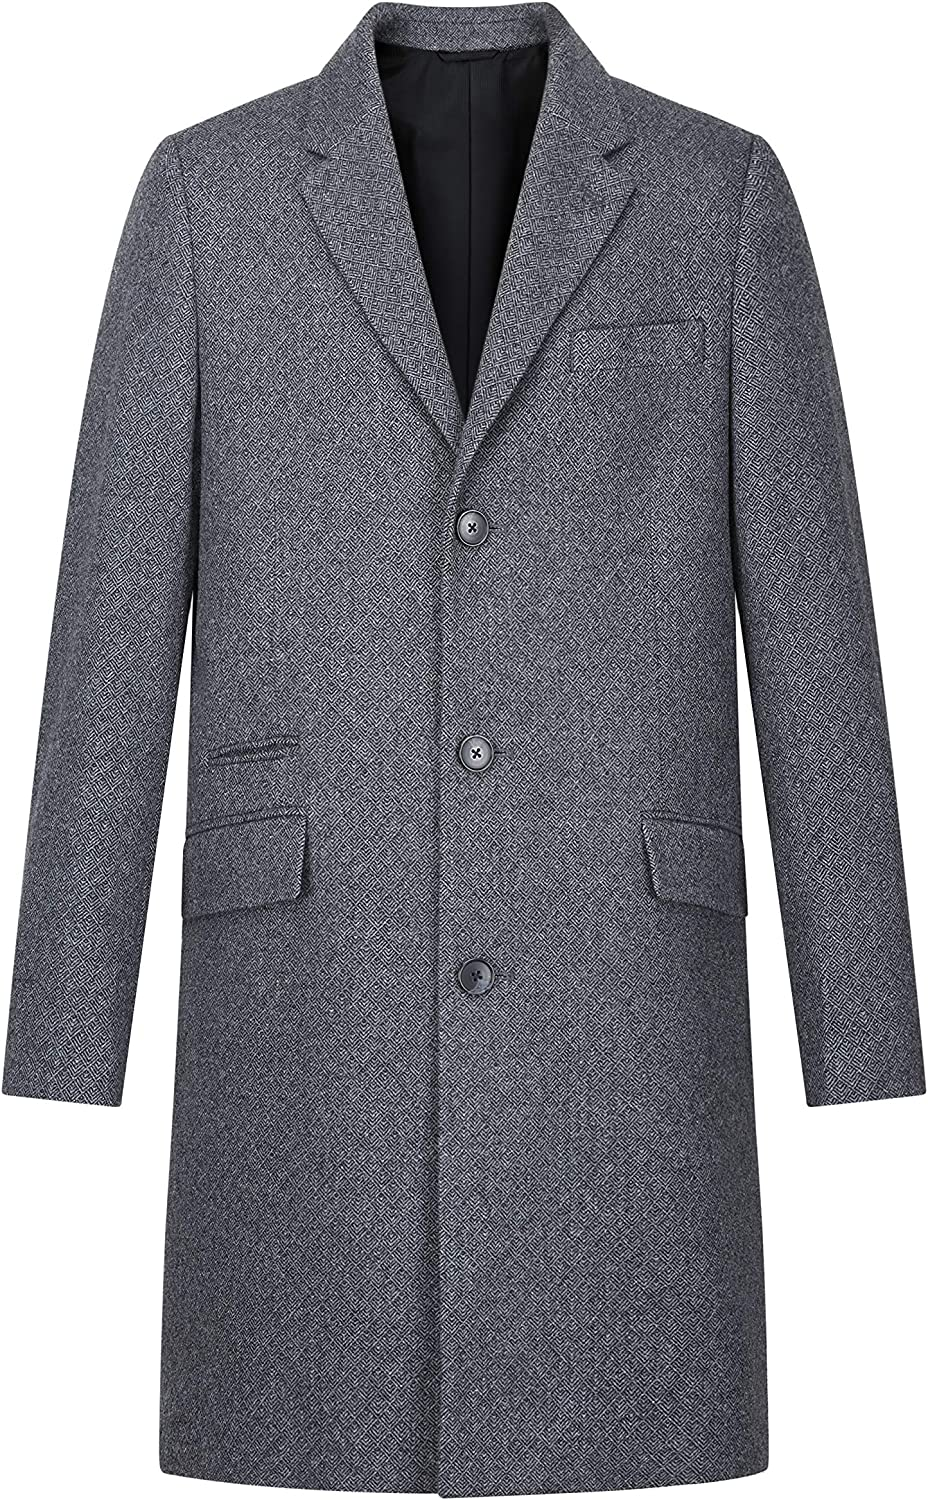 AIYIMEI Men Wool Coat Mens Classic Notched Collar Single Breasted Wool Blend Long Overcoat